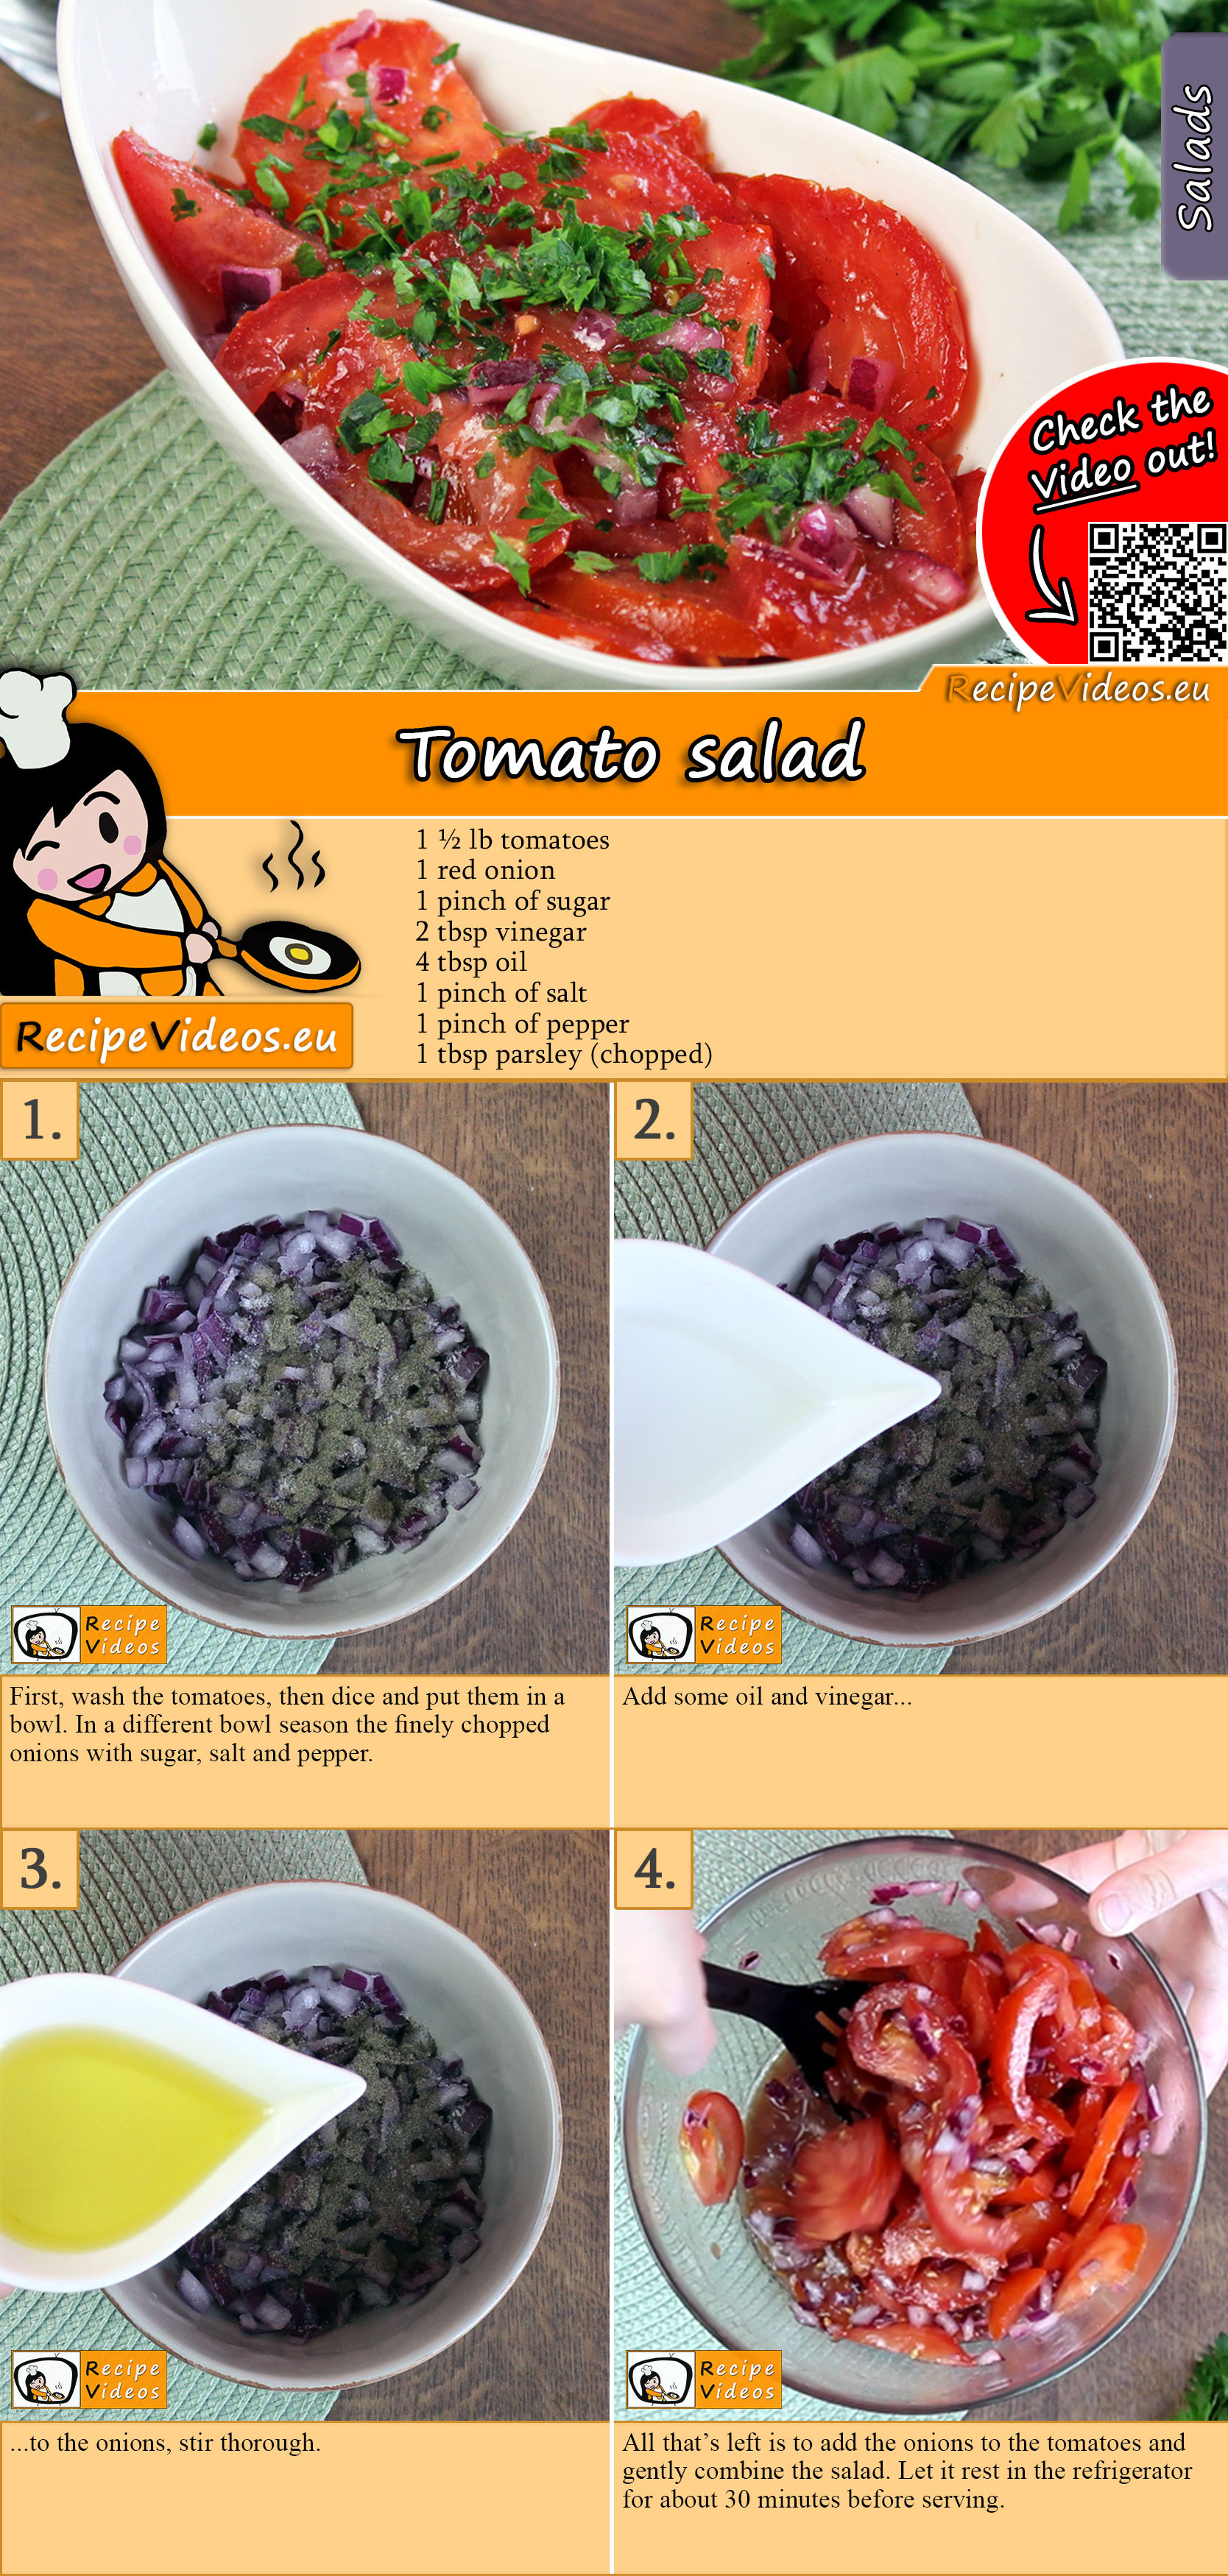 Tomato salad recipe with video